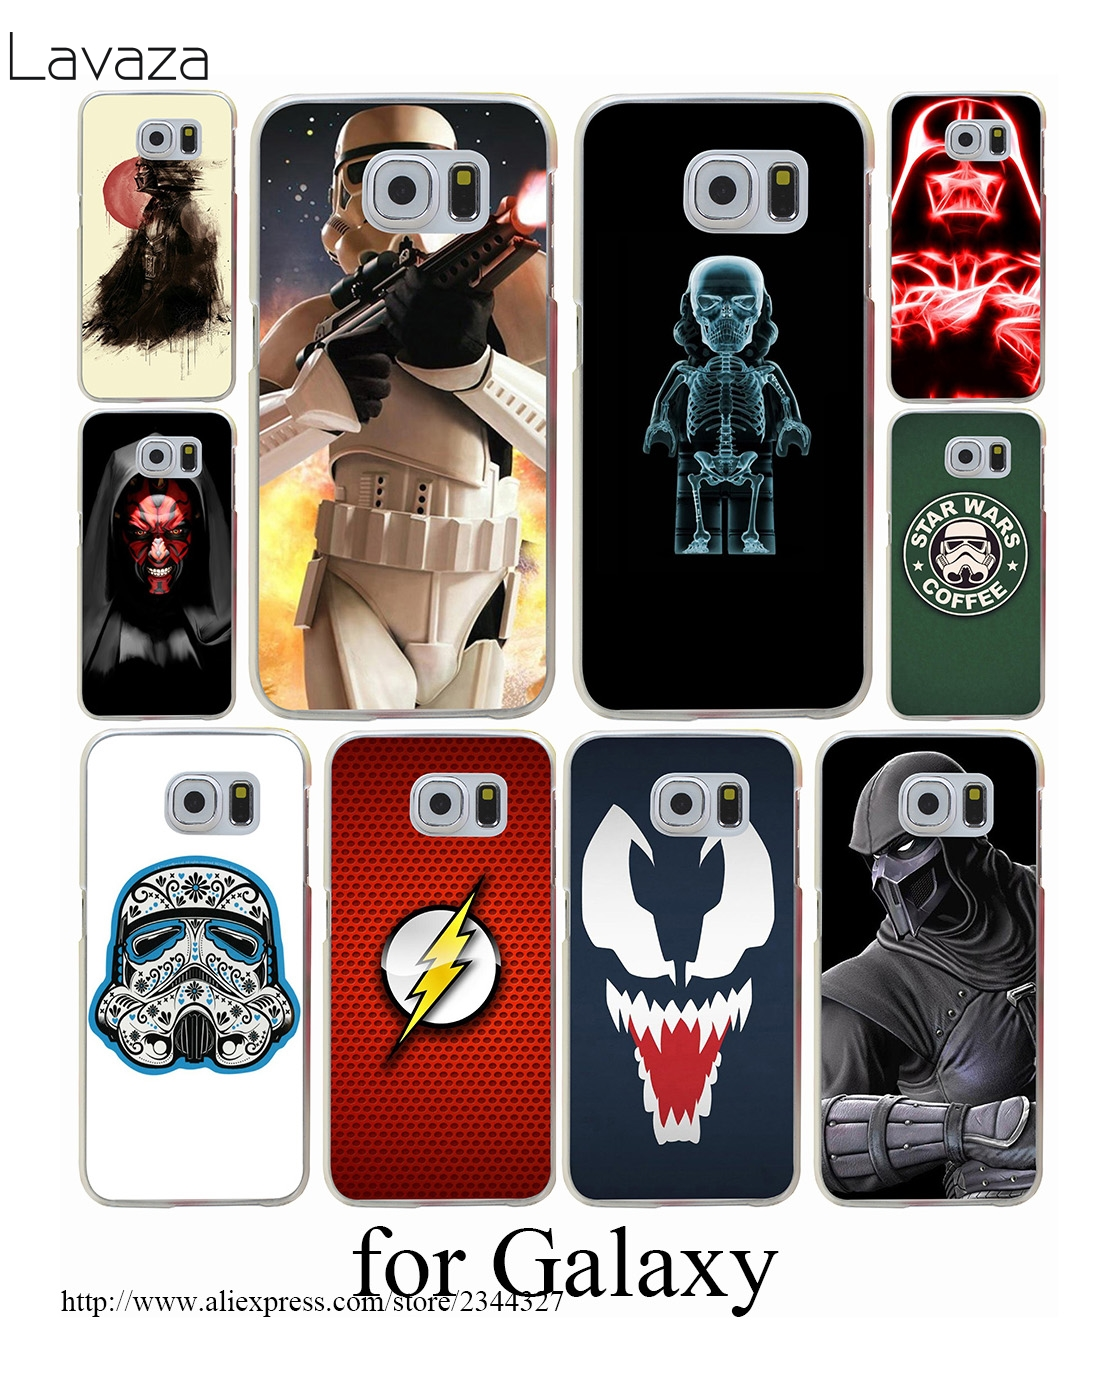 Lavaza Star wars battlefront galactic Hard Case Cover for Samsung Galaxy S3 S4 S5 Mini S6 S7 S8 S9 Edge Plus Case